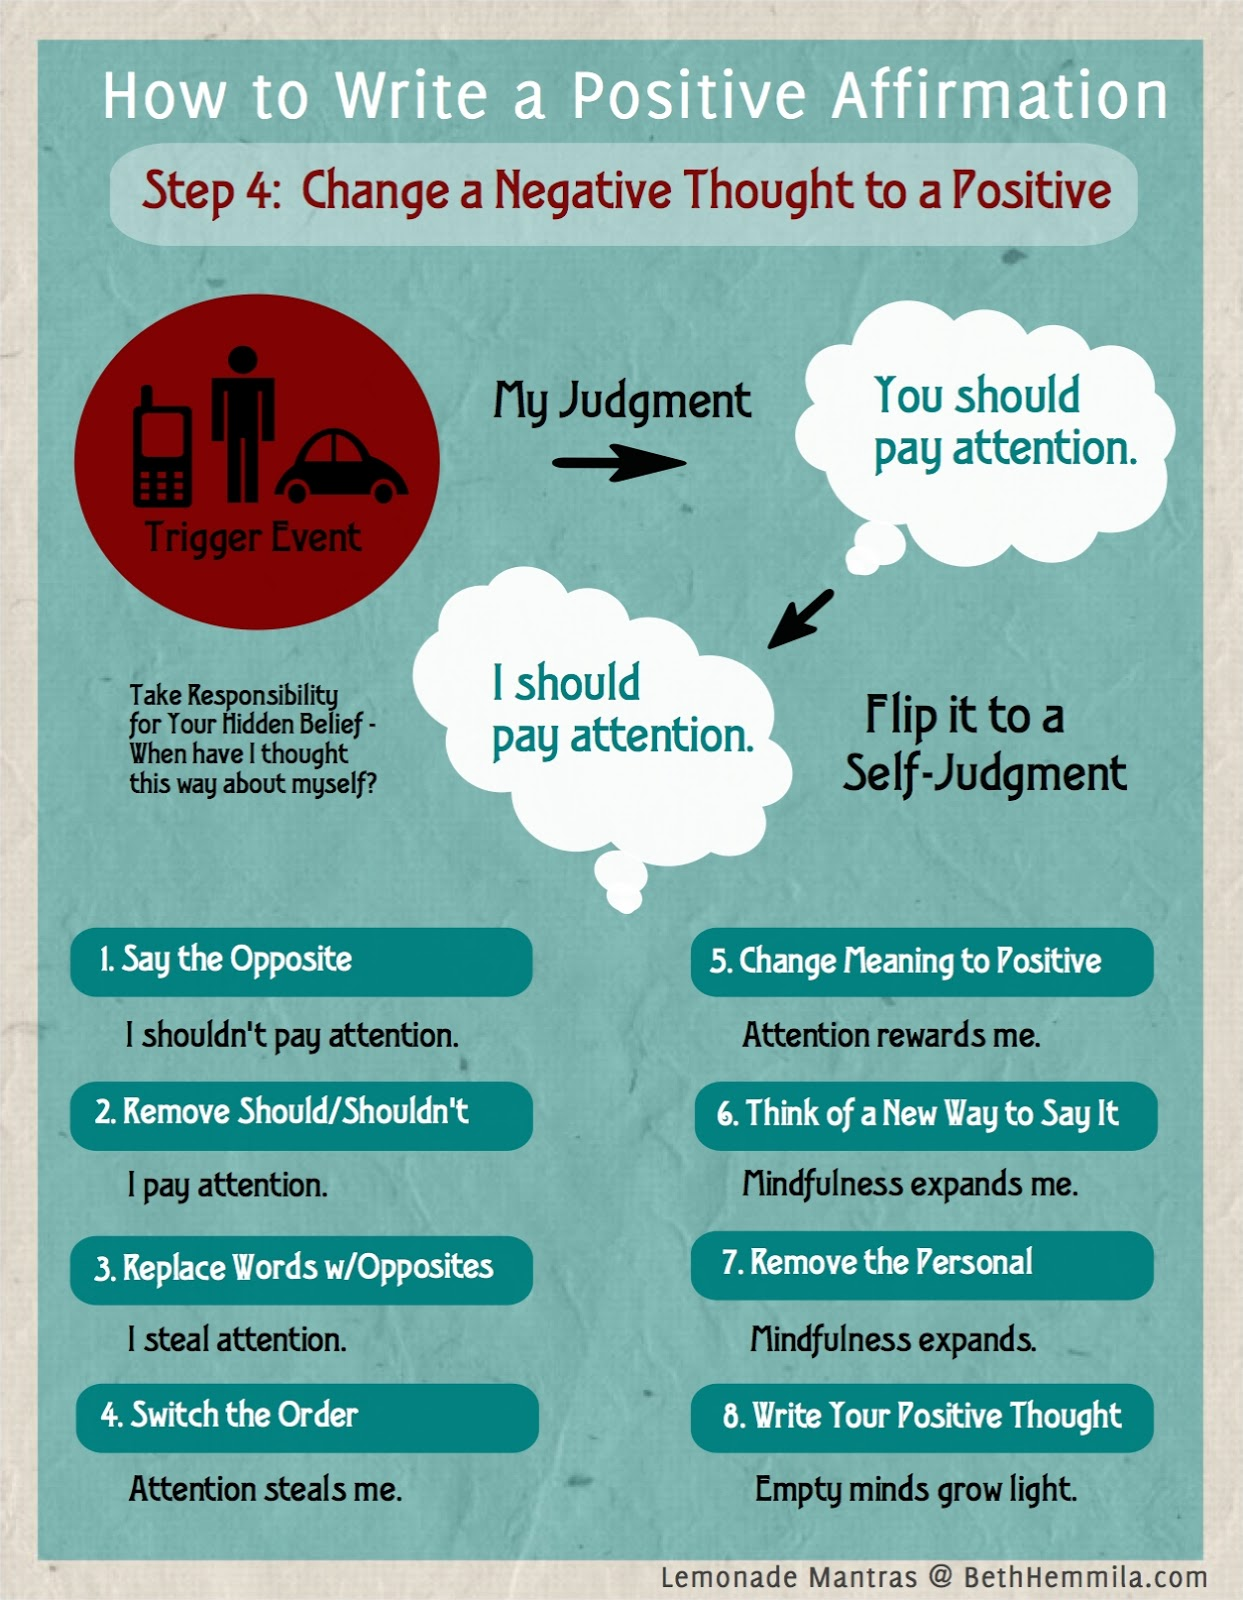 How to Write Positive Affirmations Step 4 Change a Negative Thought to a Positive by Beth Hemmila of Lemonade Mantras